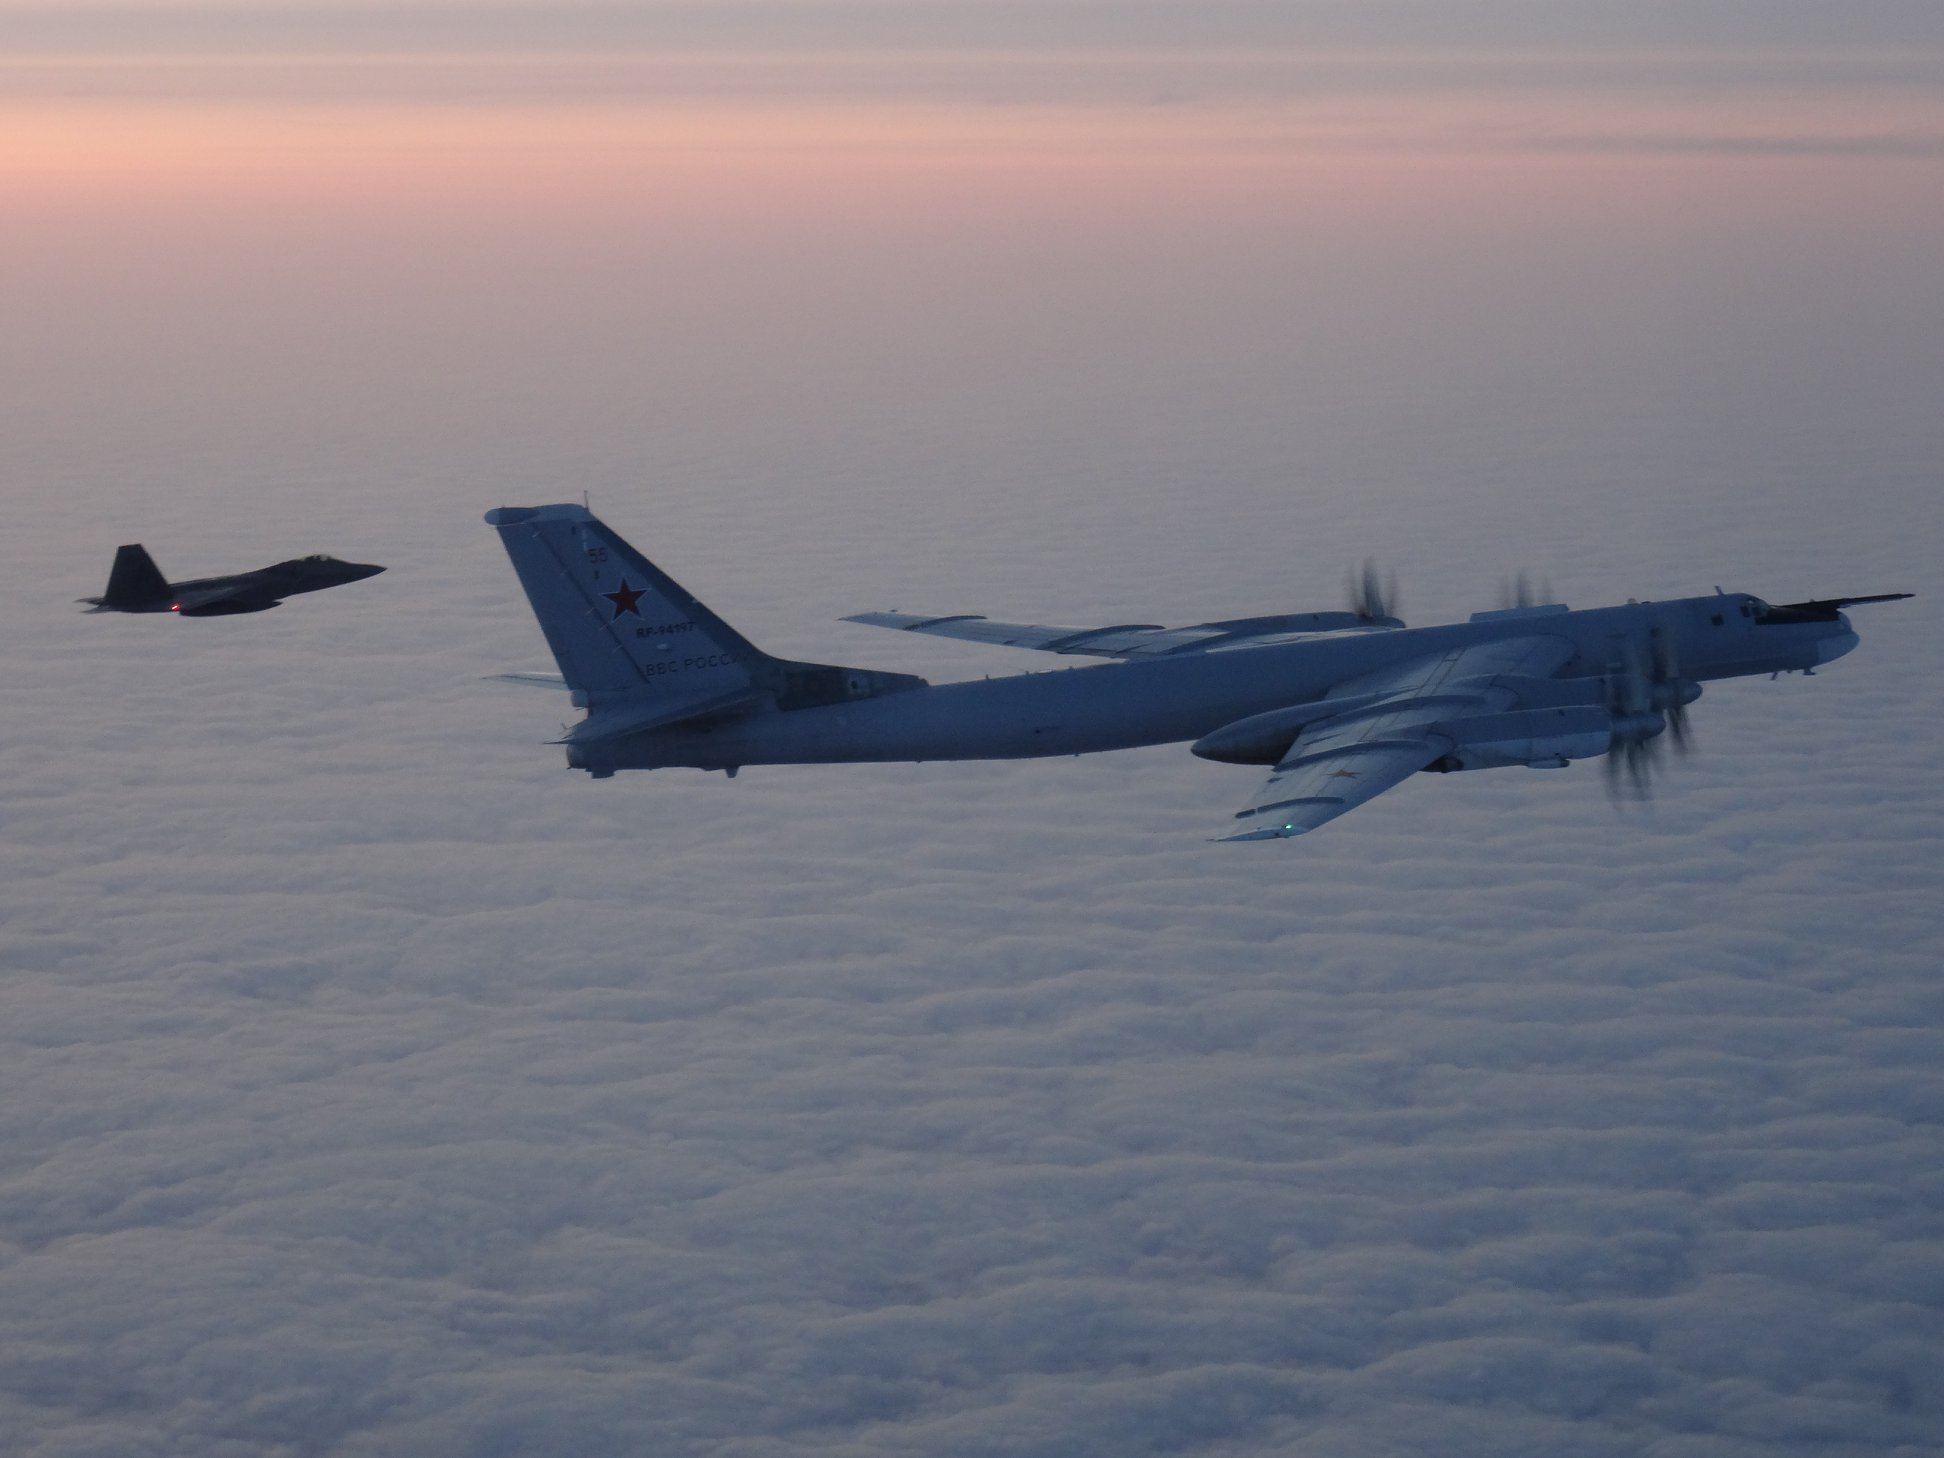 U.S., Canadian Jets Intercept Russian Bombers Off Alaskan Coast